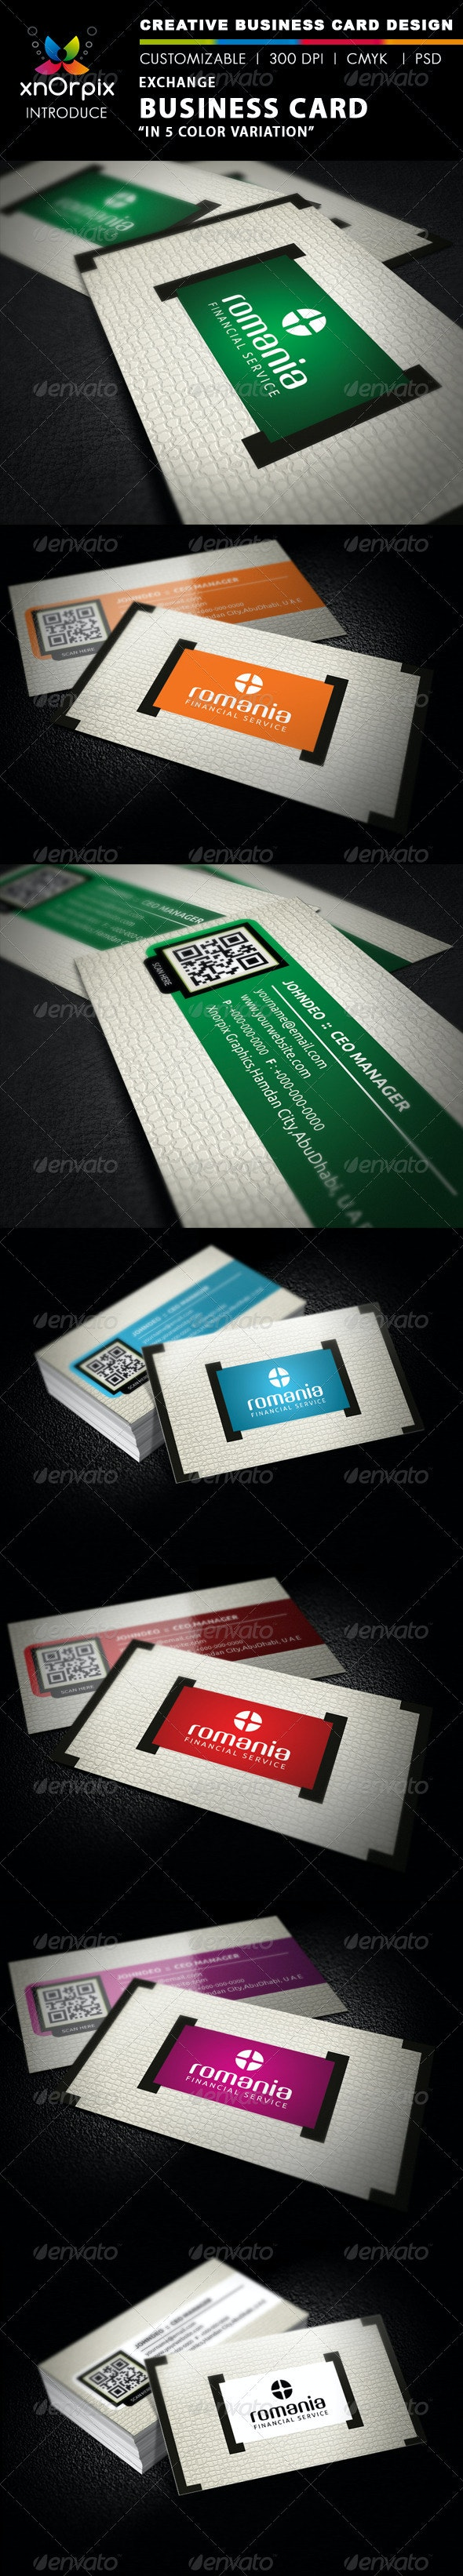 Exchange Business Card - Creative Business Cards